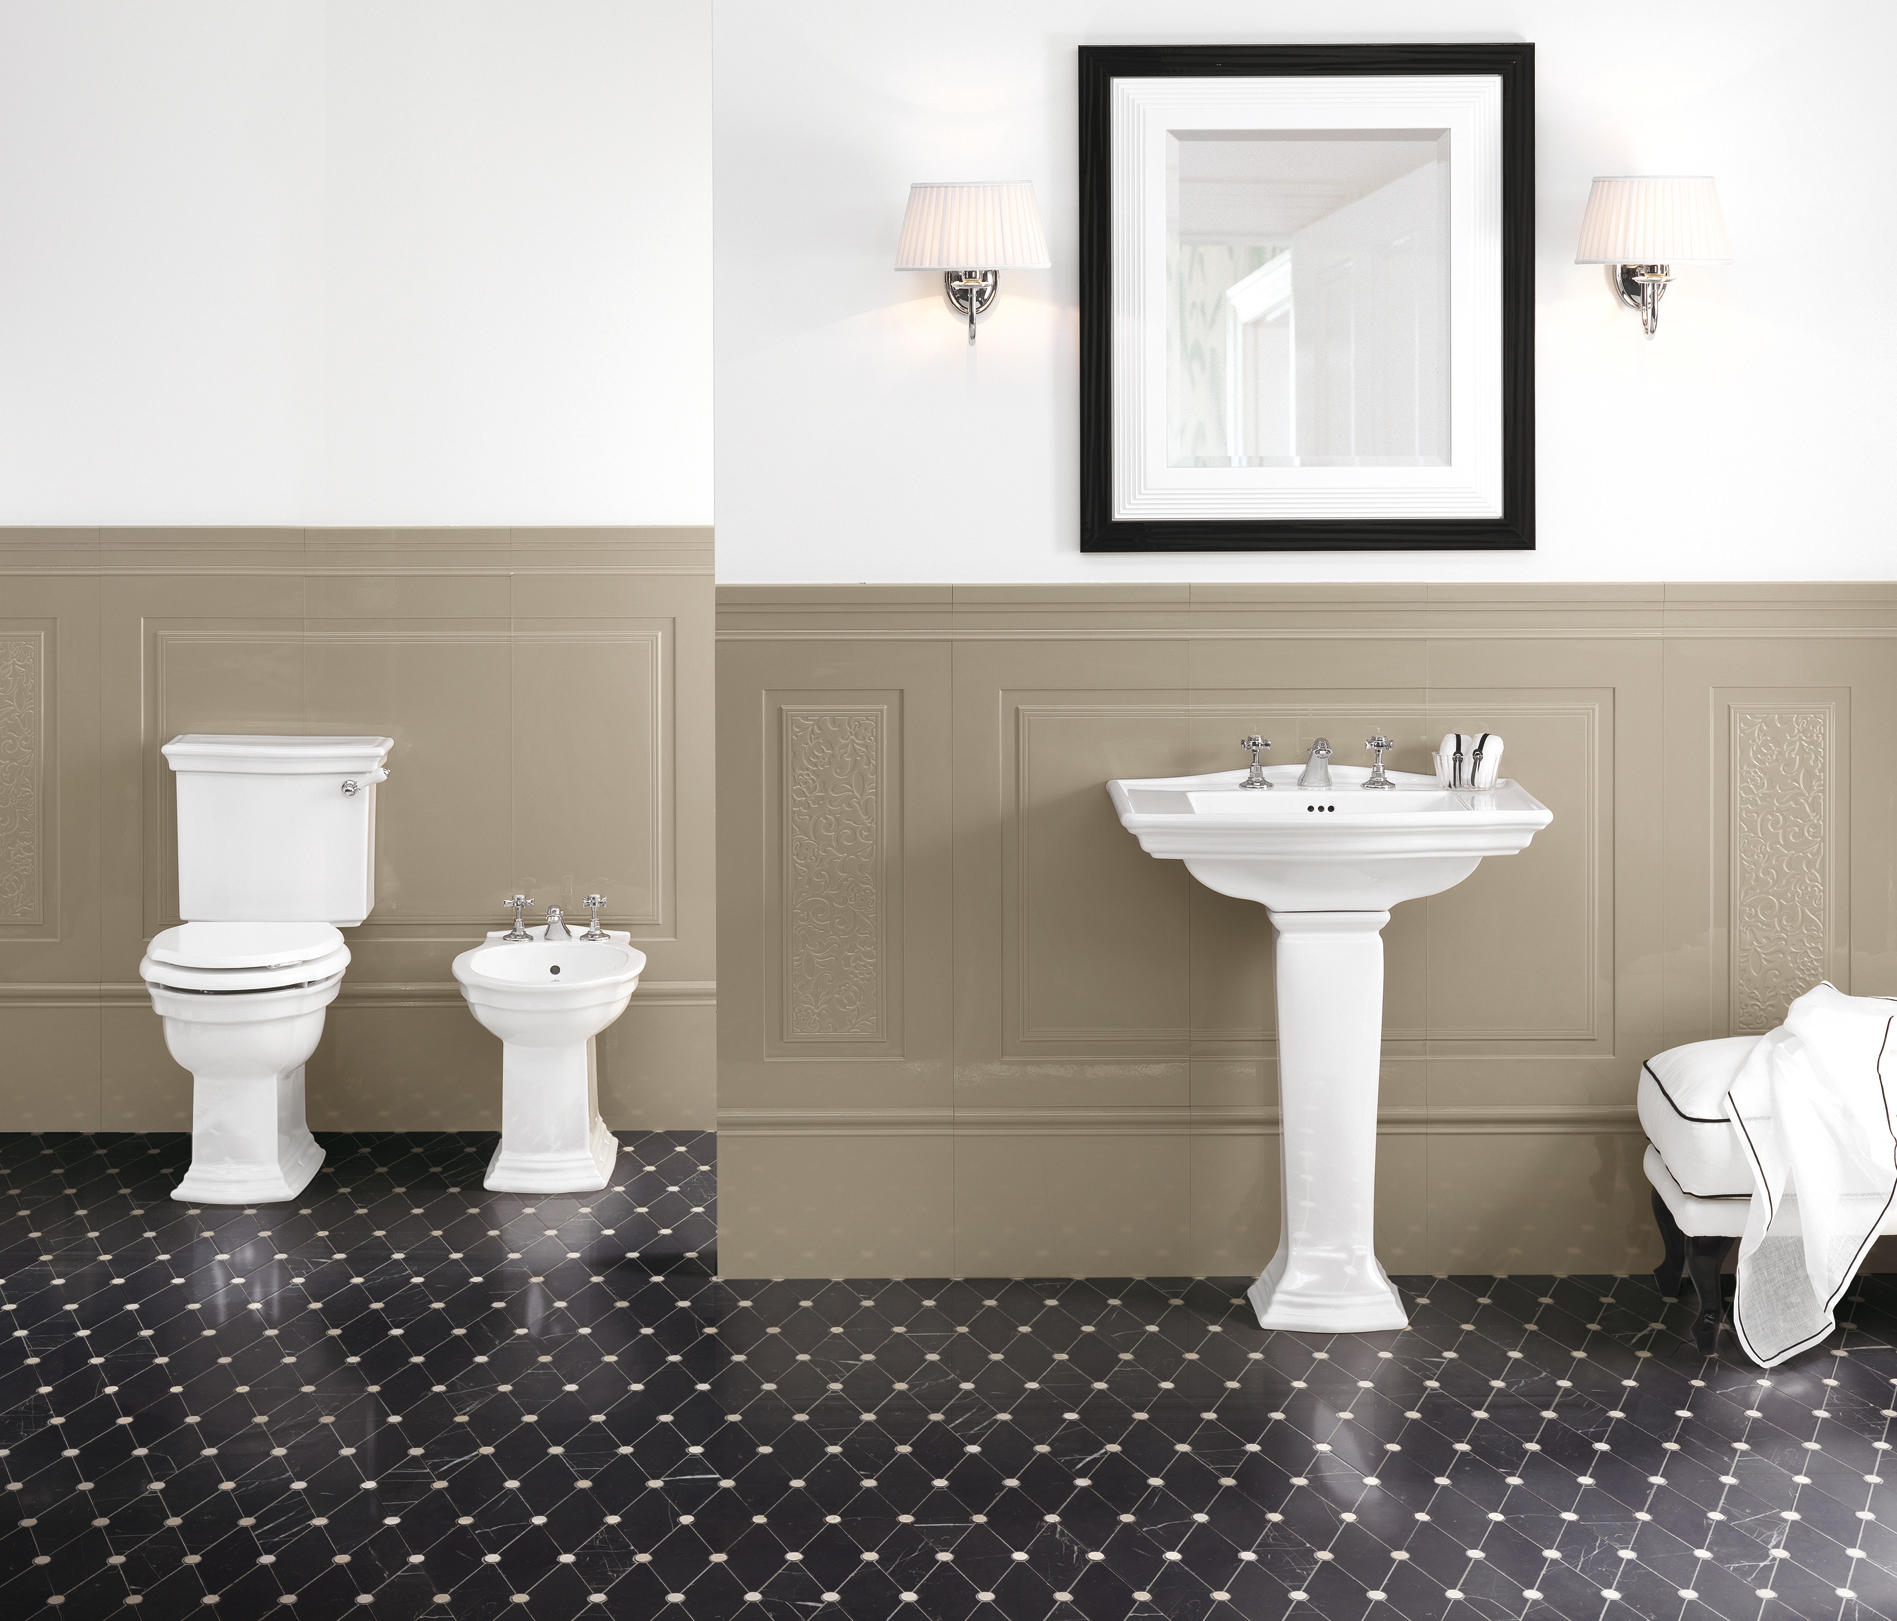 Ambiance Wc Westminster Collection Ambiance De Devon Devon Architonic